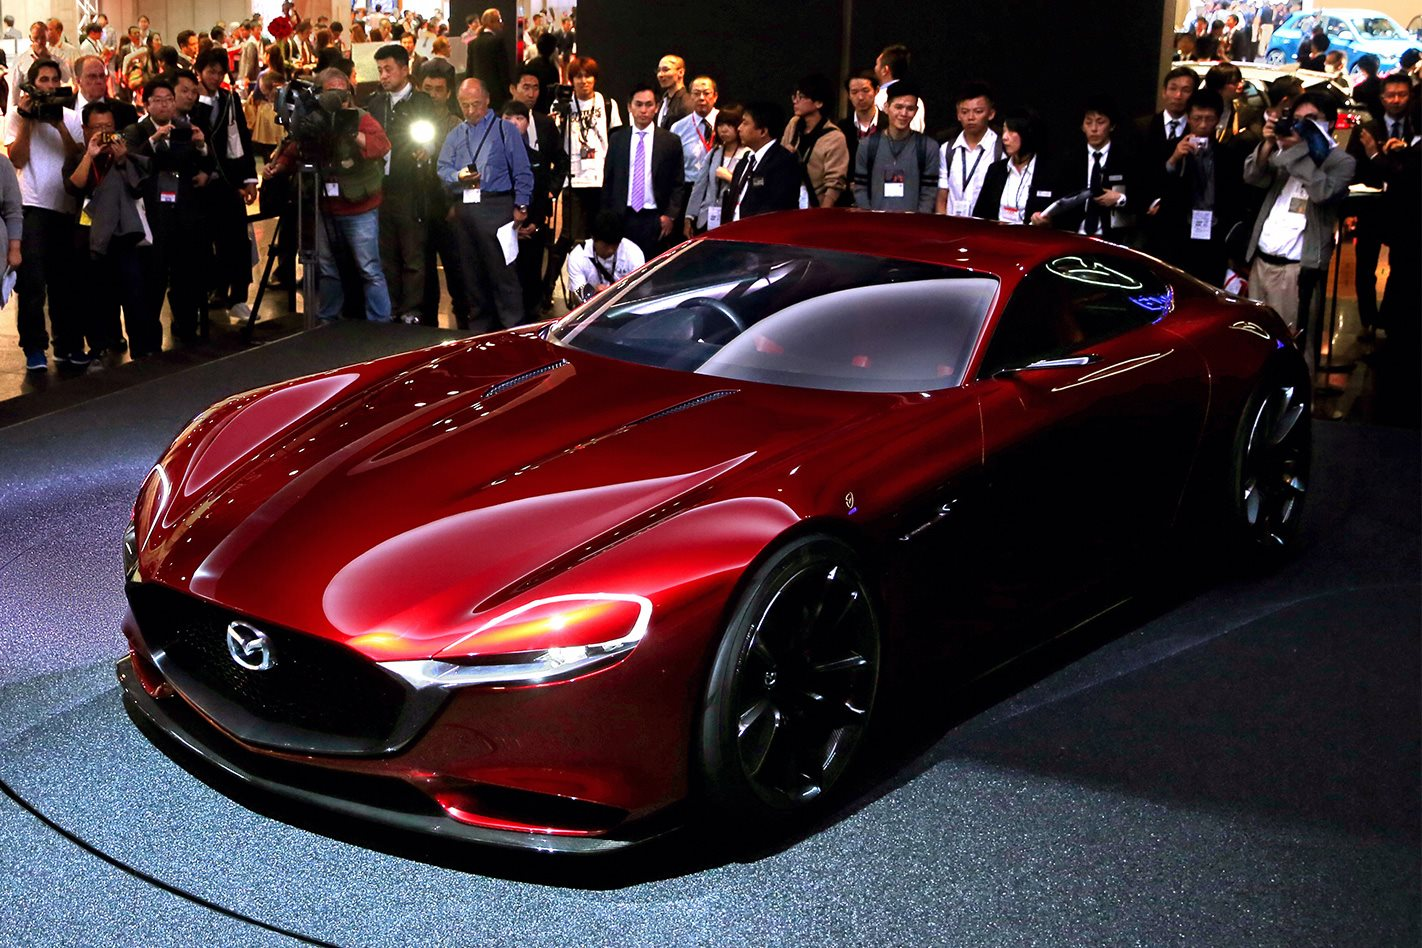 Tokyo Motor Show Mazda Rx Vision Concept Car To Inspire